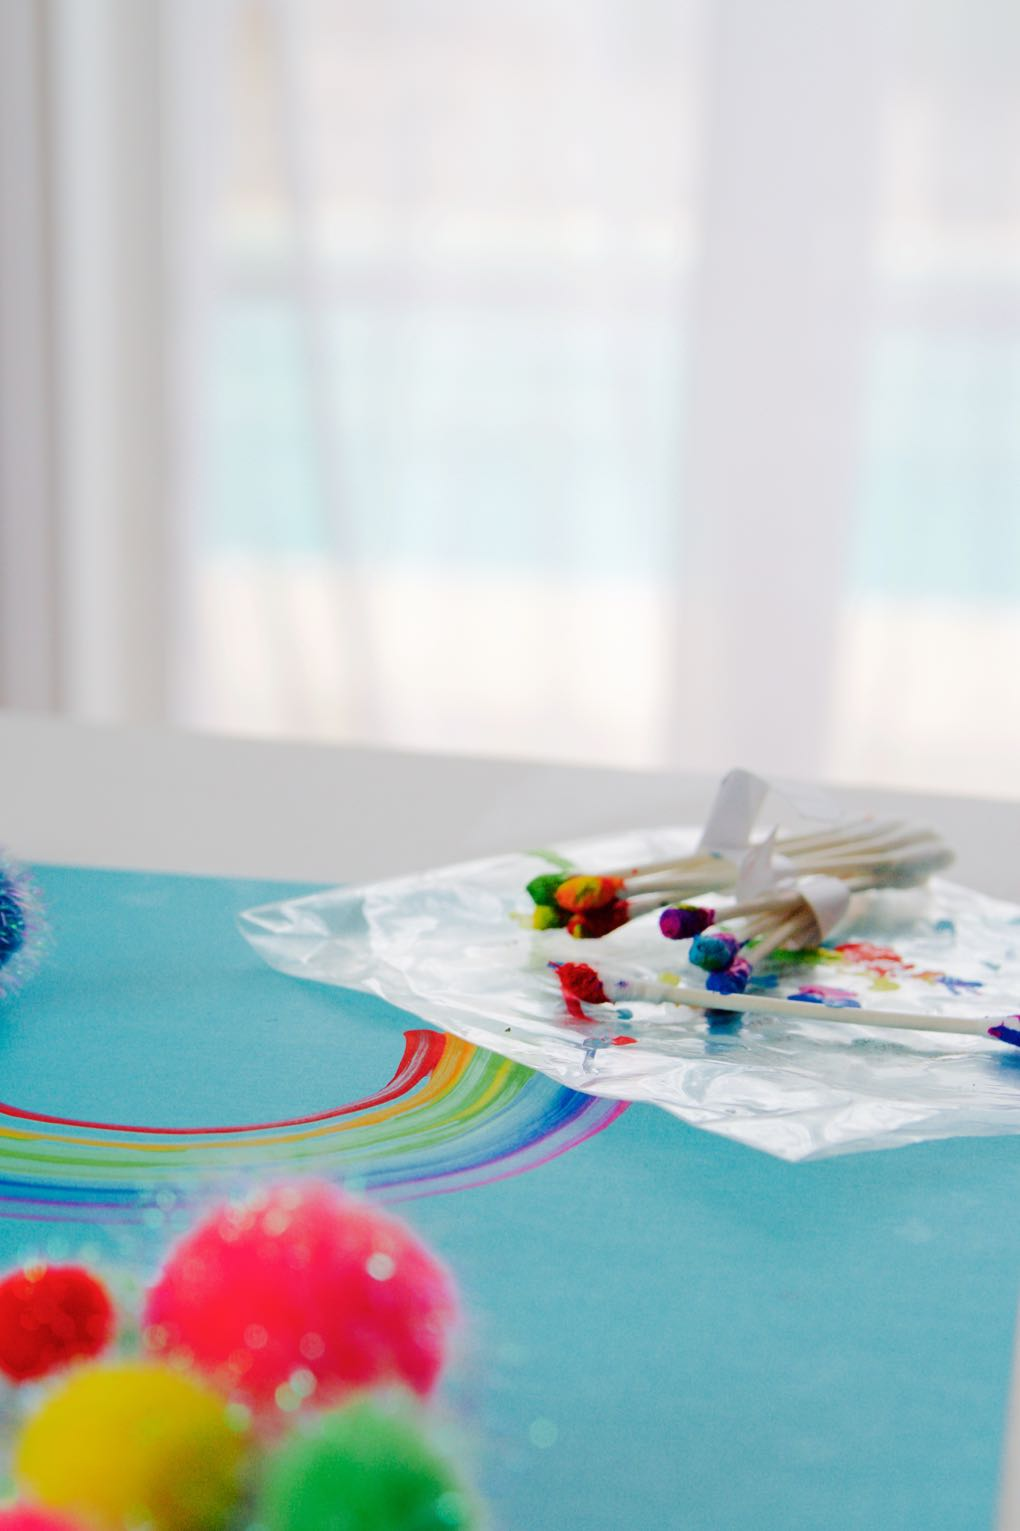 how to make a rainbow using q tips and paint